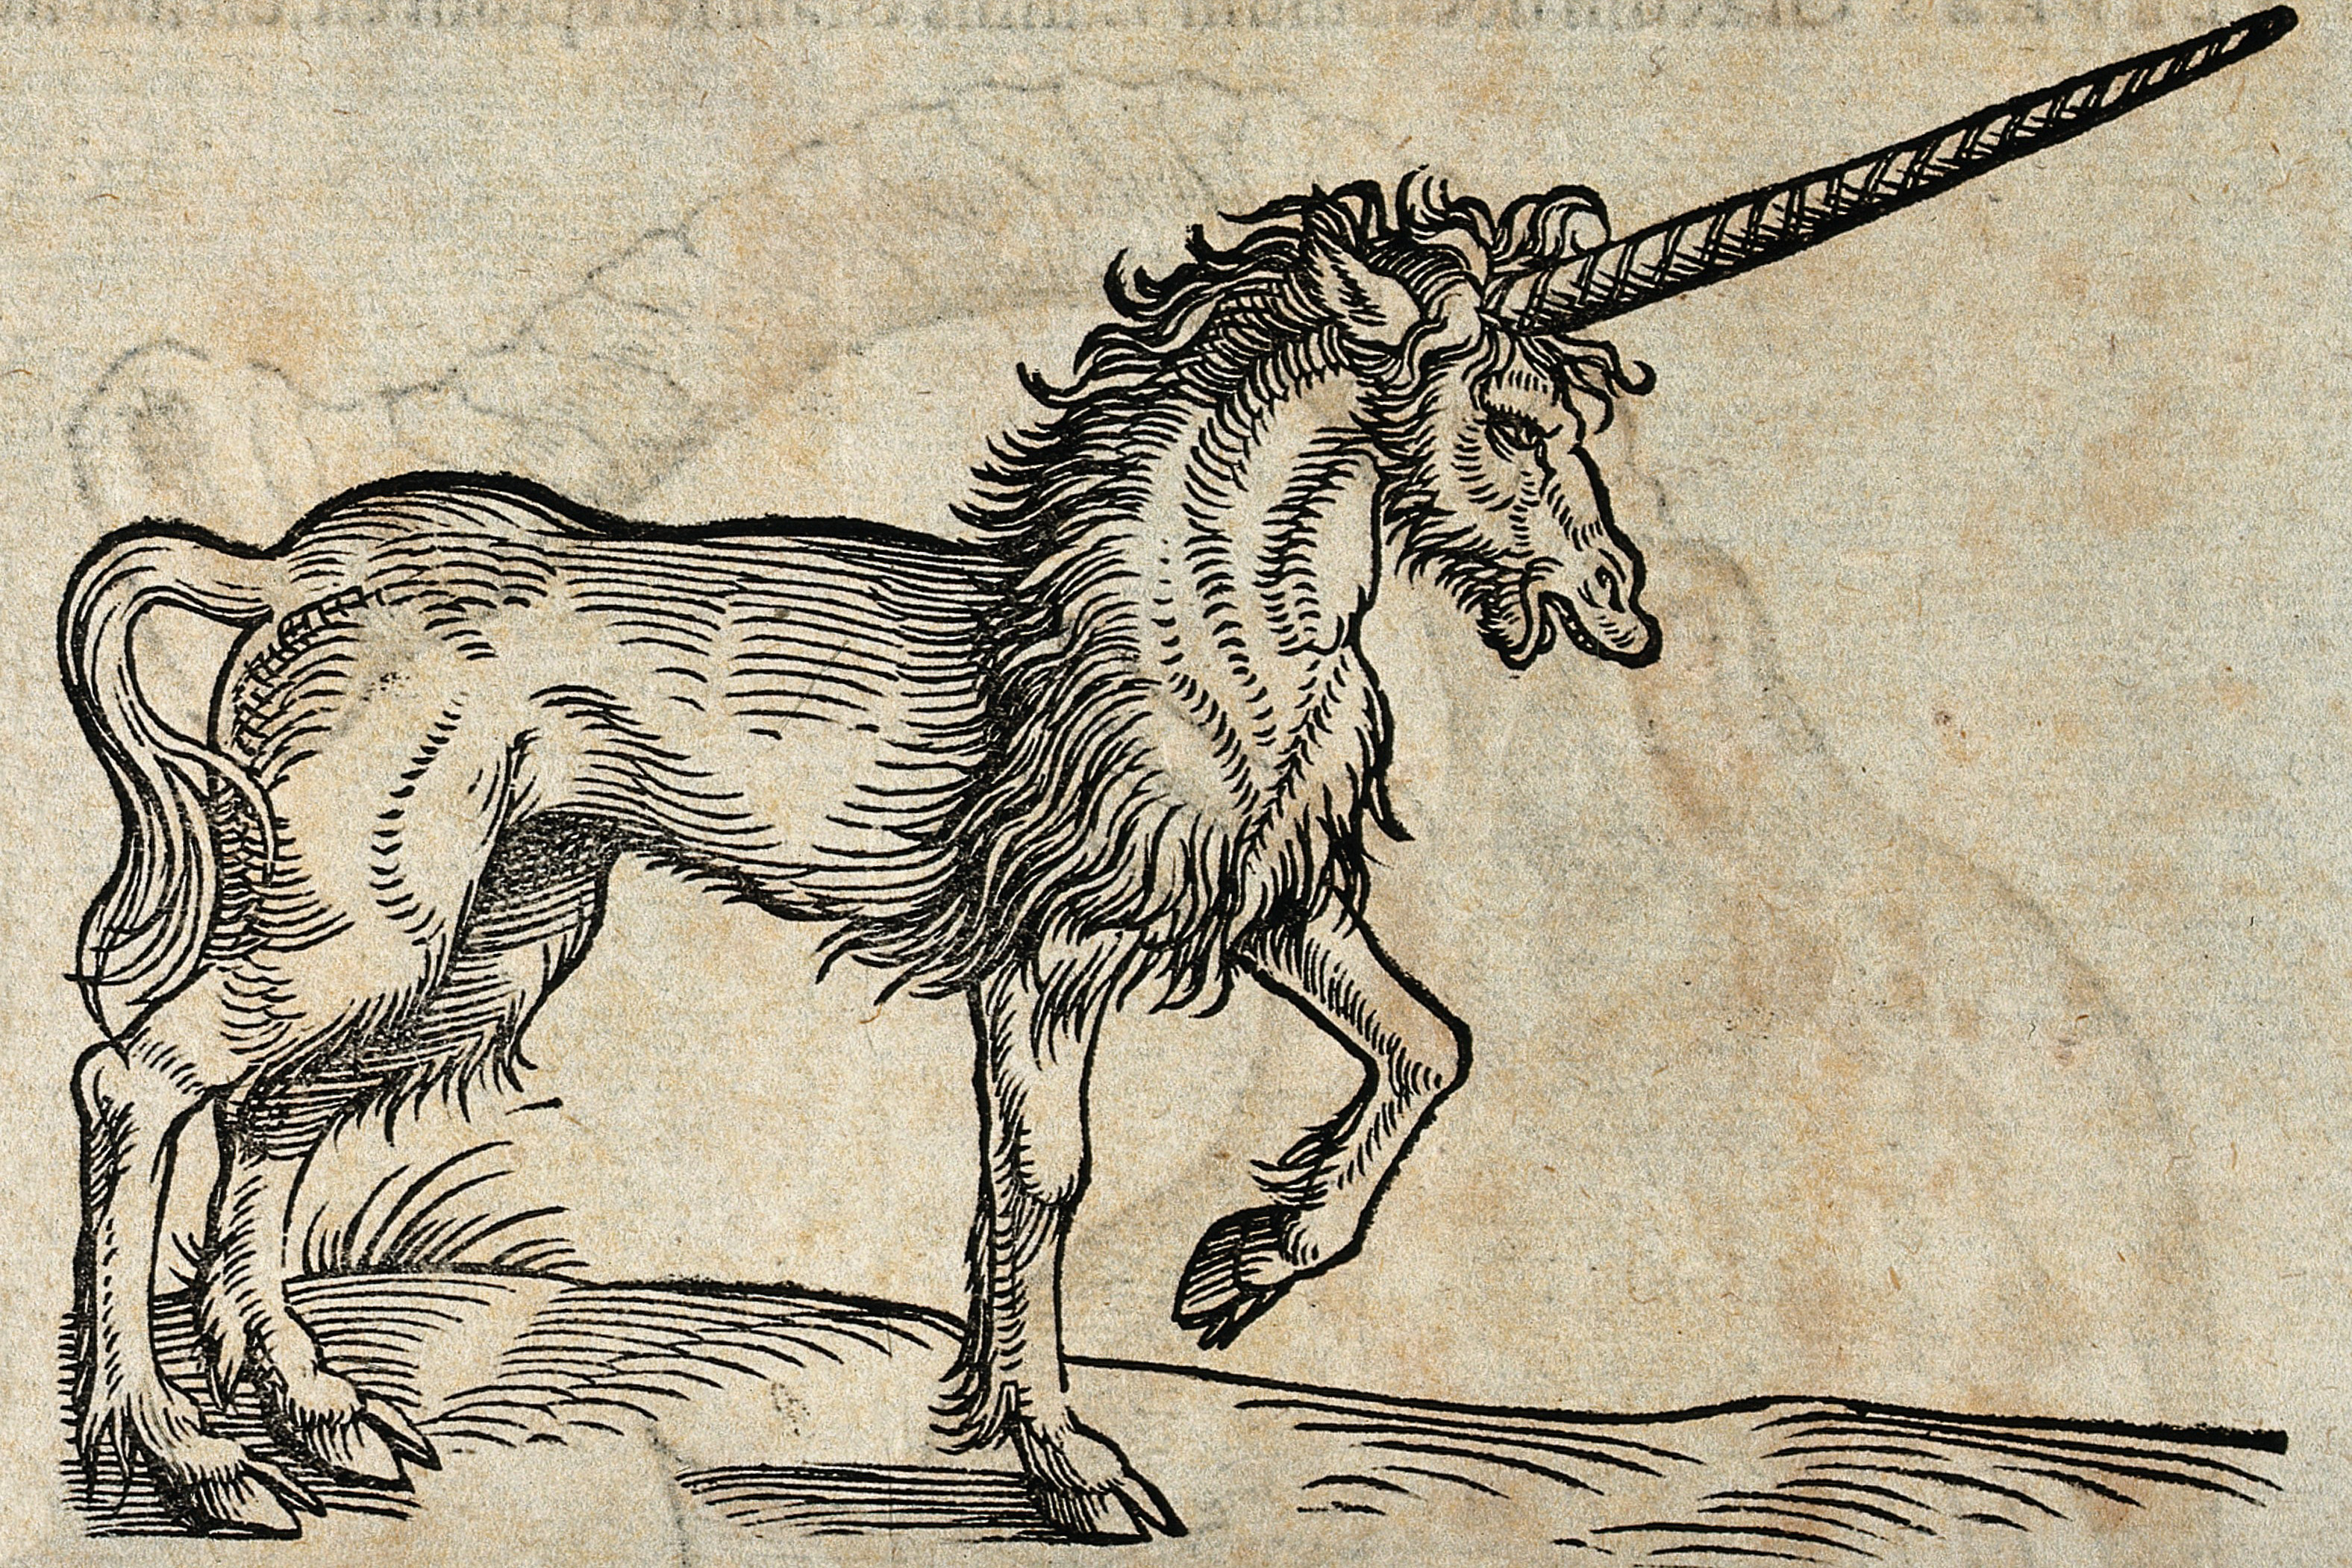 A 14th century woodcut depicting a unicorn with a very long horn, the tail of a cat, and goat-like feet.